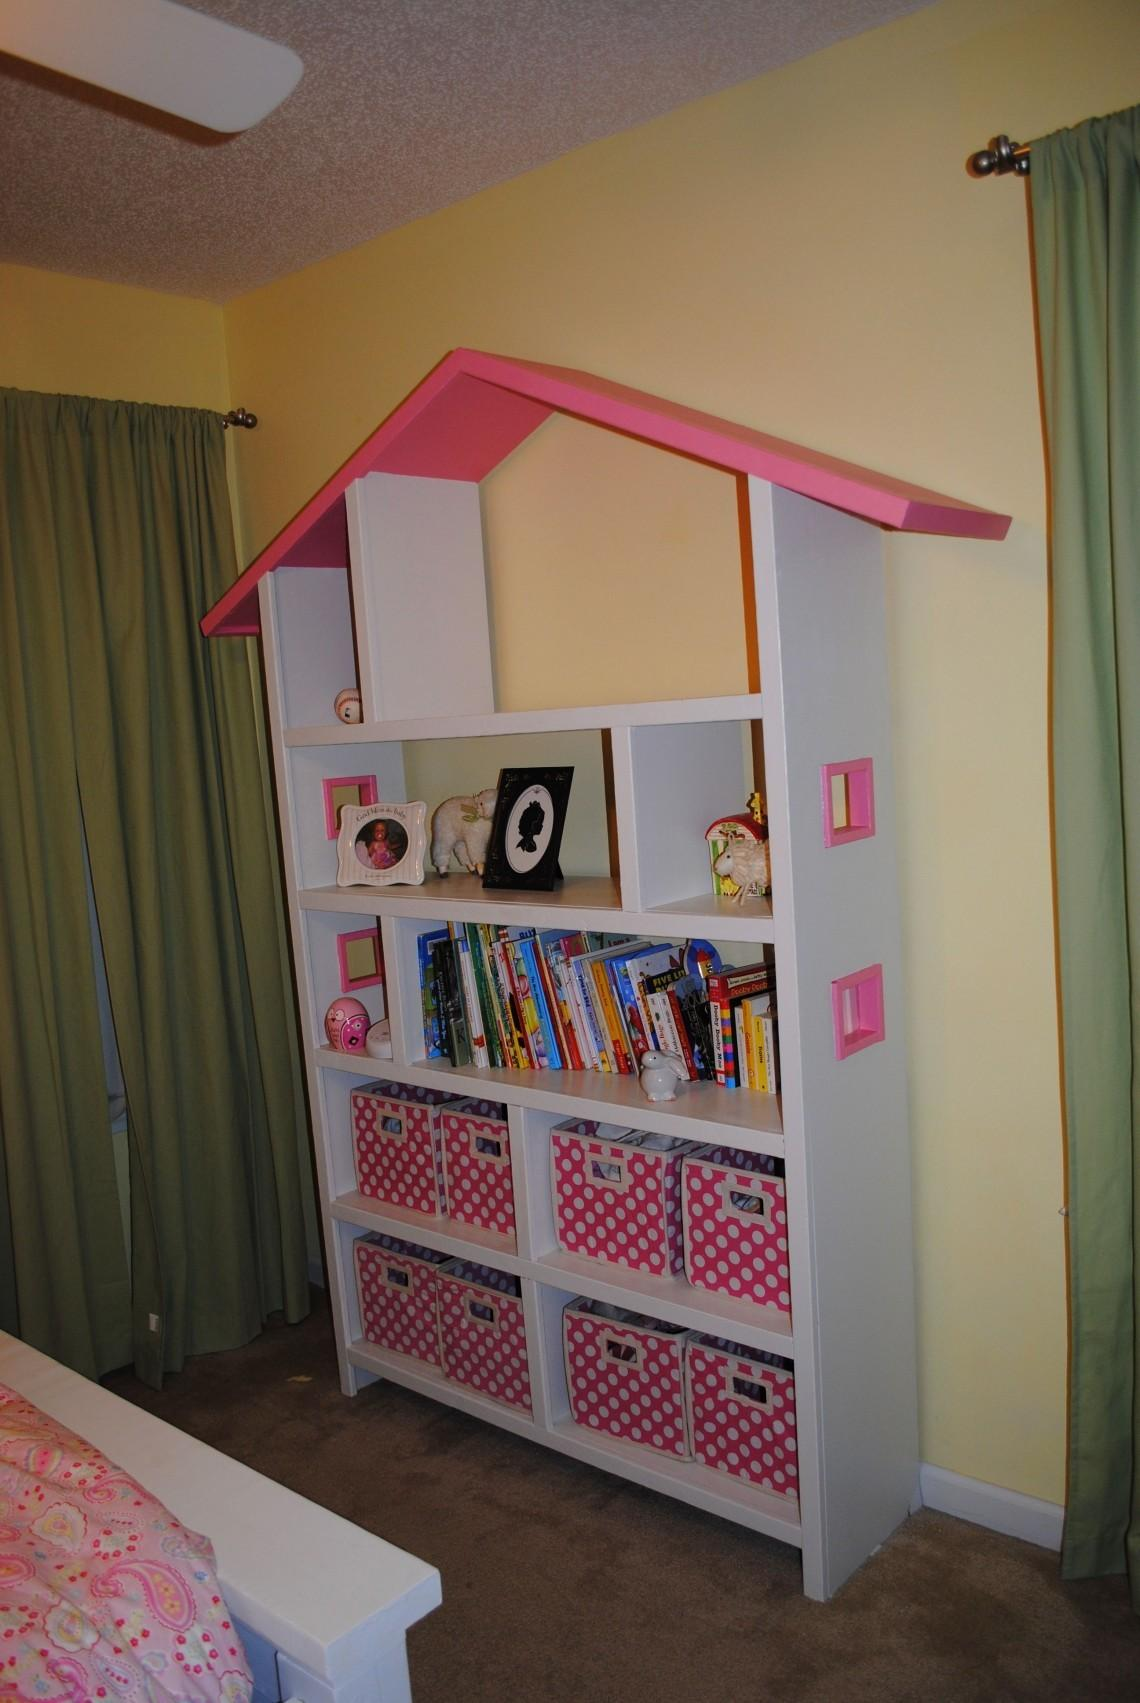 Kids Room Categoriez Awesome Decorating Ideas